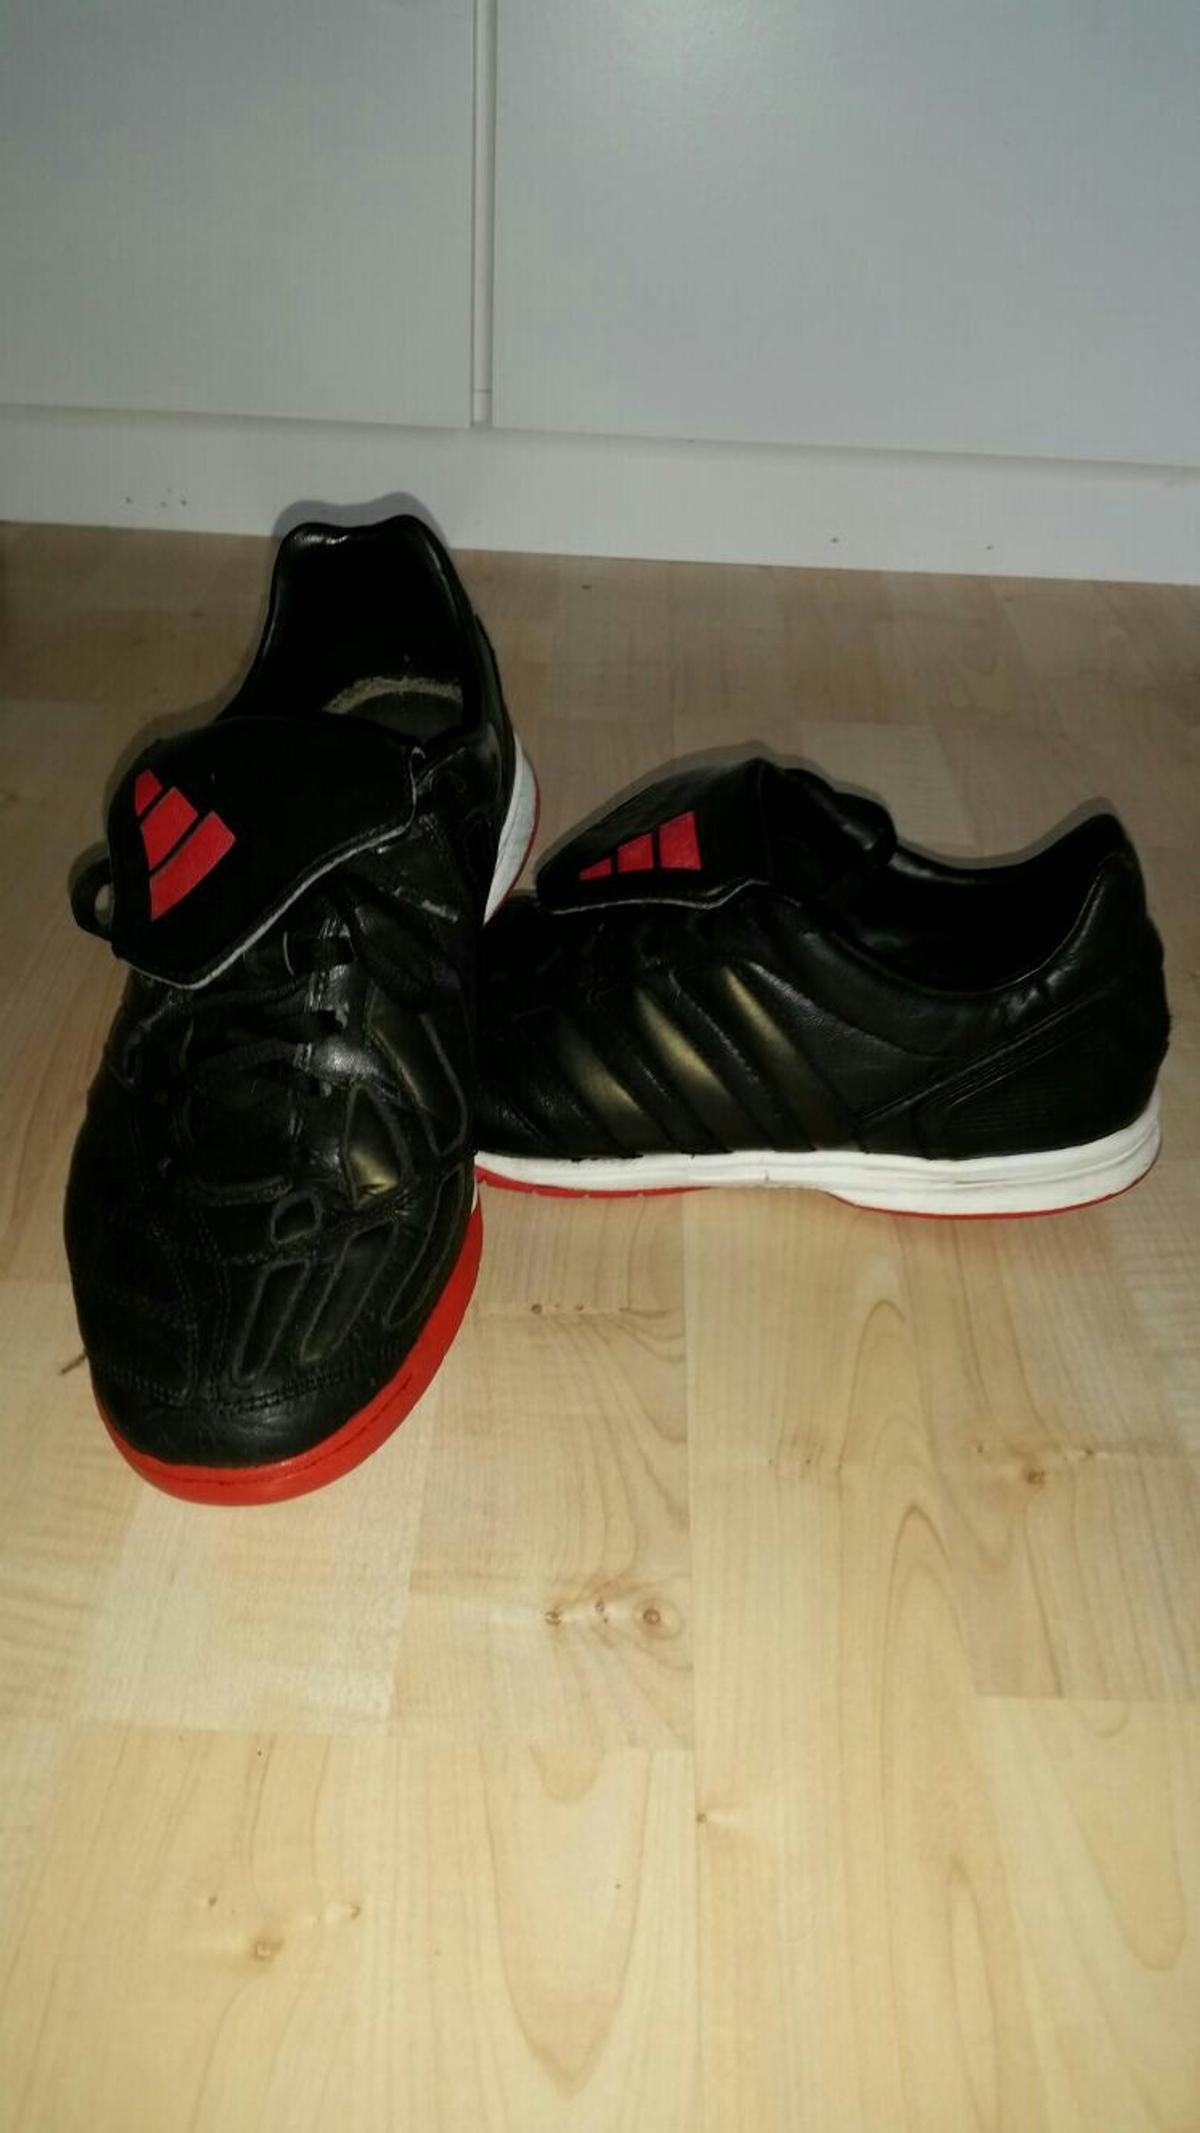 Fussball Hallenschuhe Adidas In 32051 Herford For 25 00 For